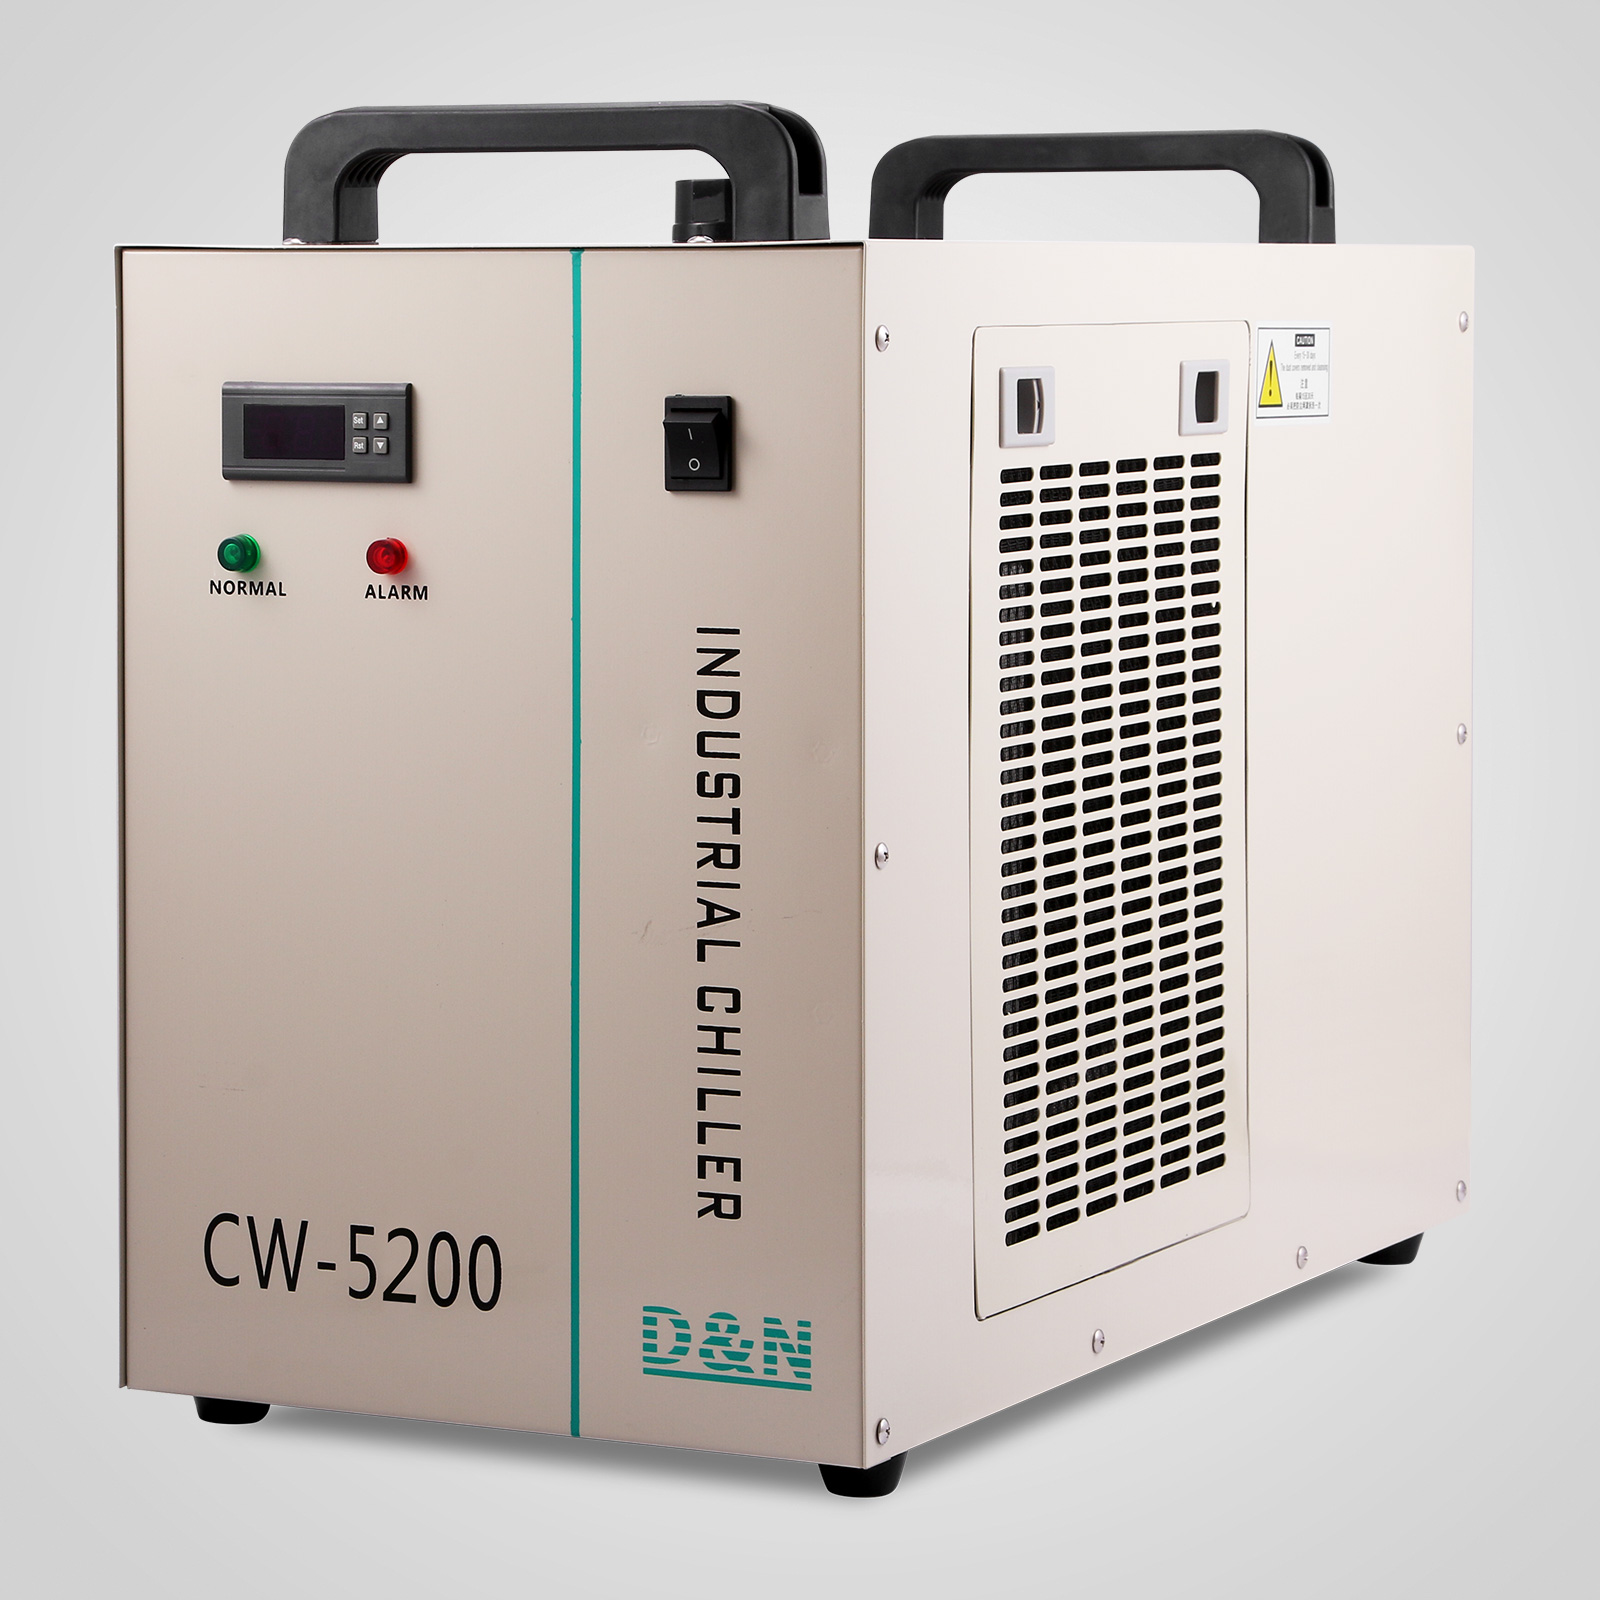 220V CW 5200DG Industrial Water Chiller for Single 130/150W CO2 Laser  #2B847B